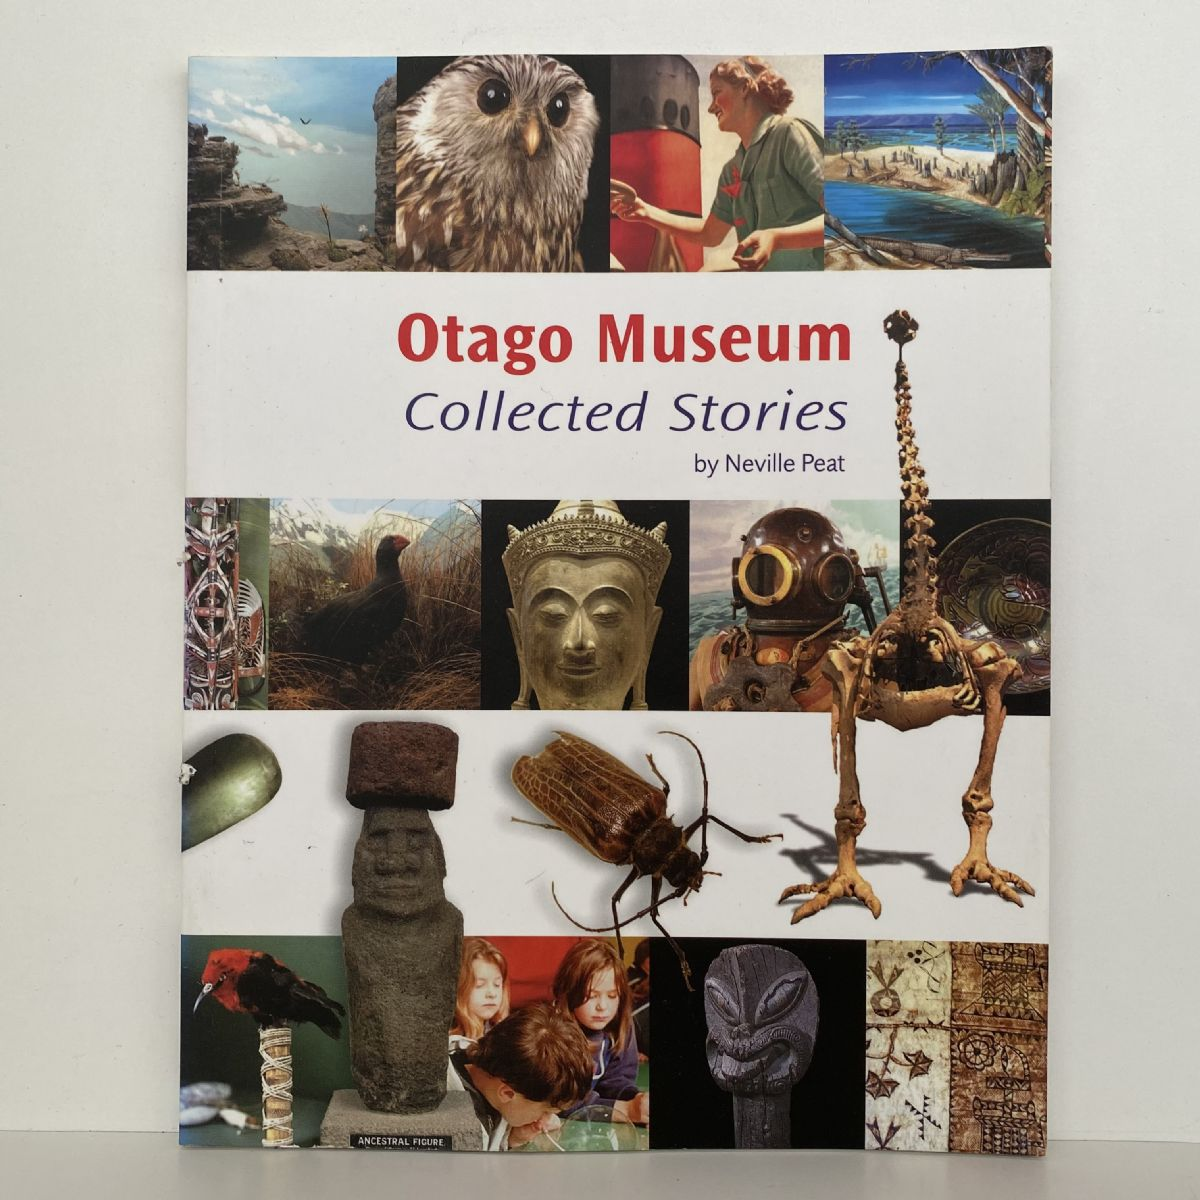 Otago Museum: Collected Stories